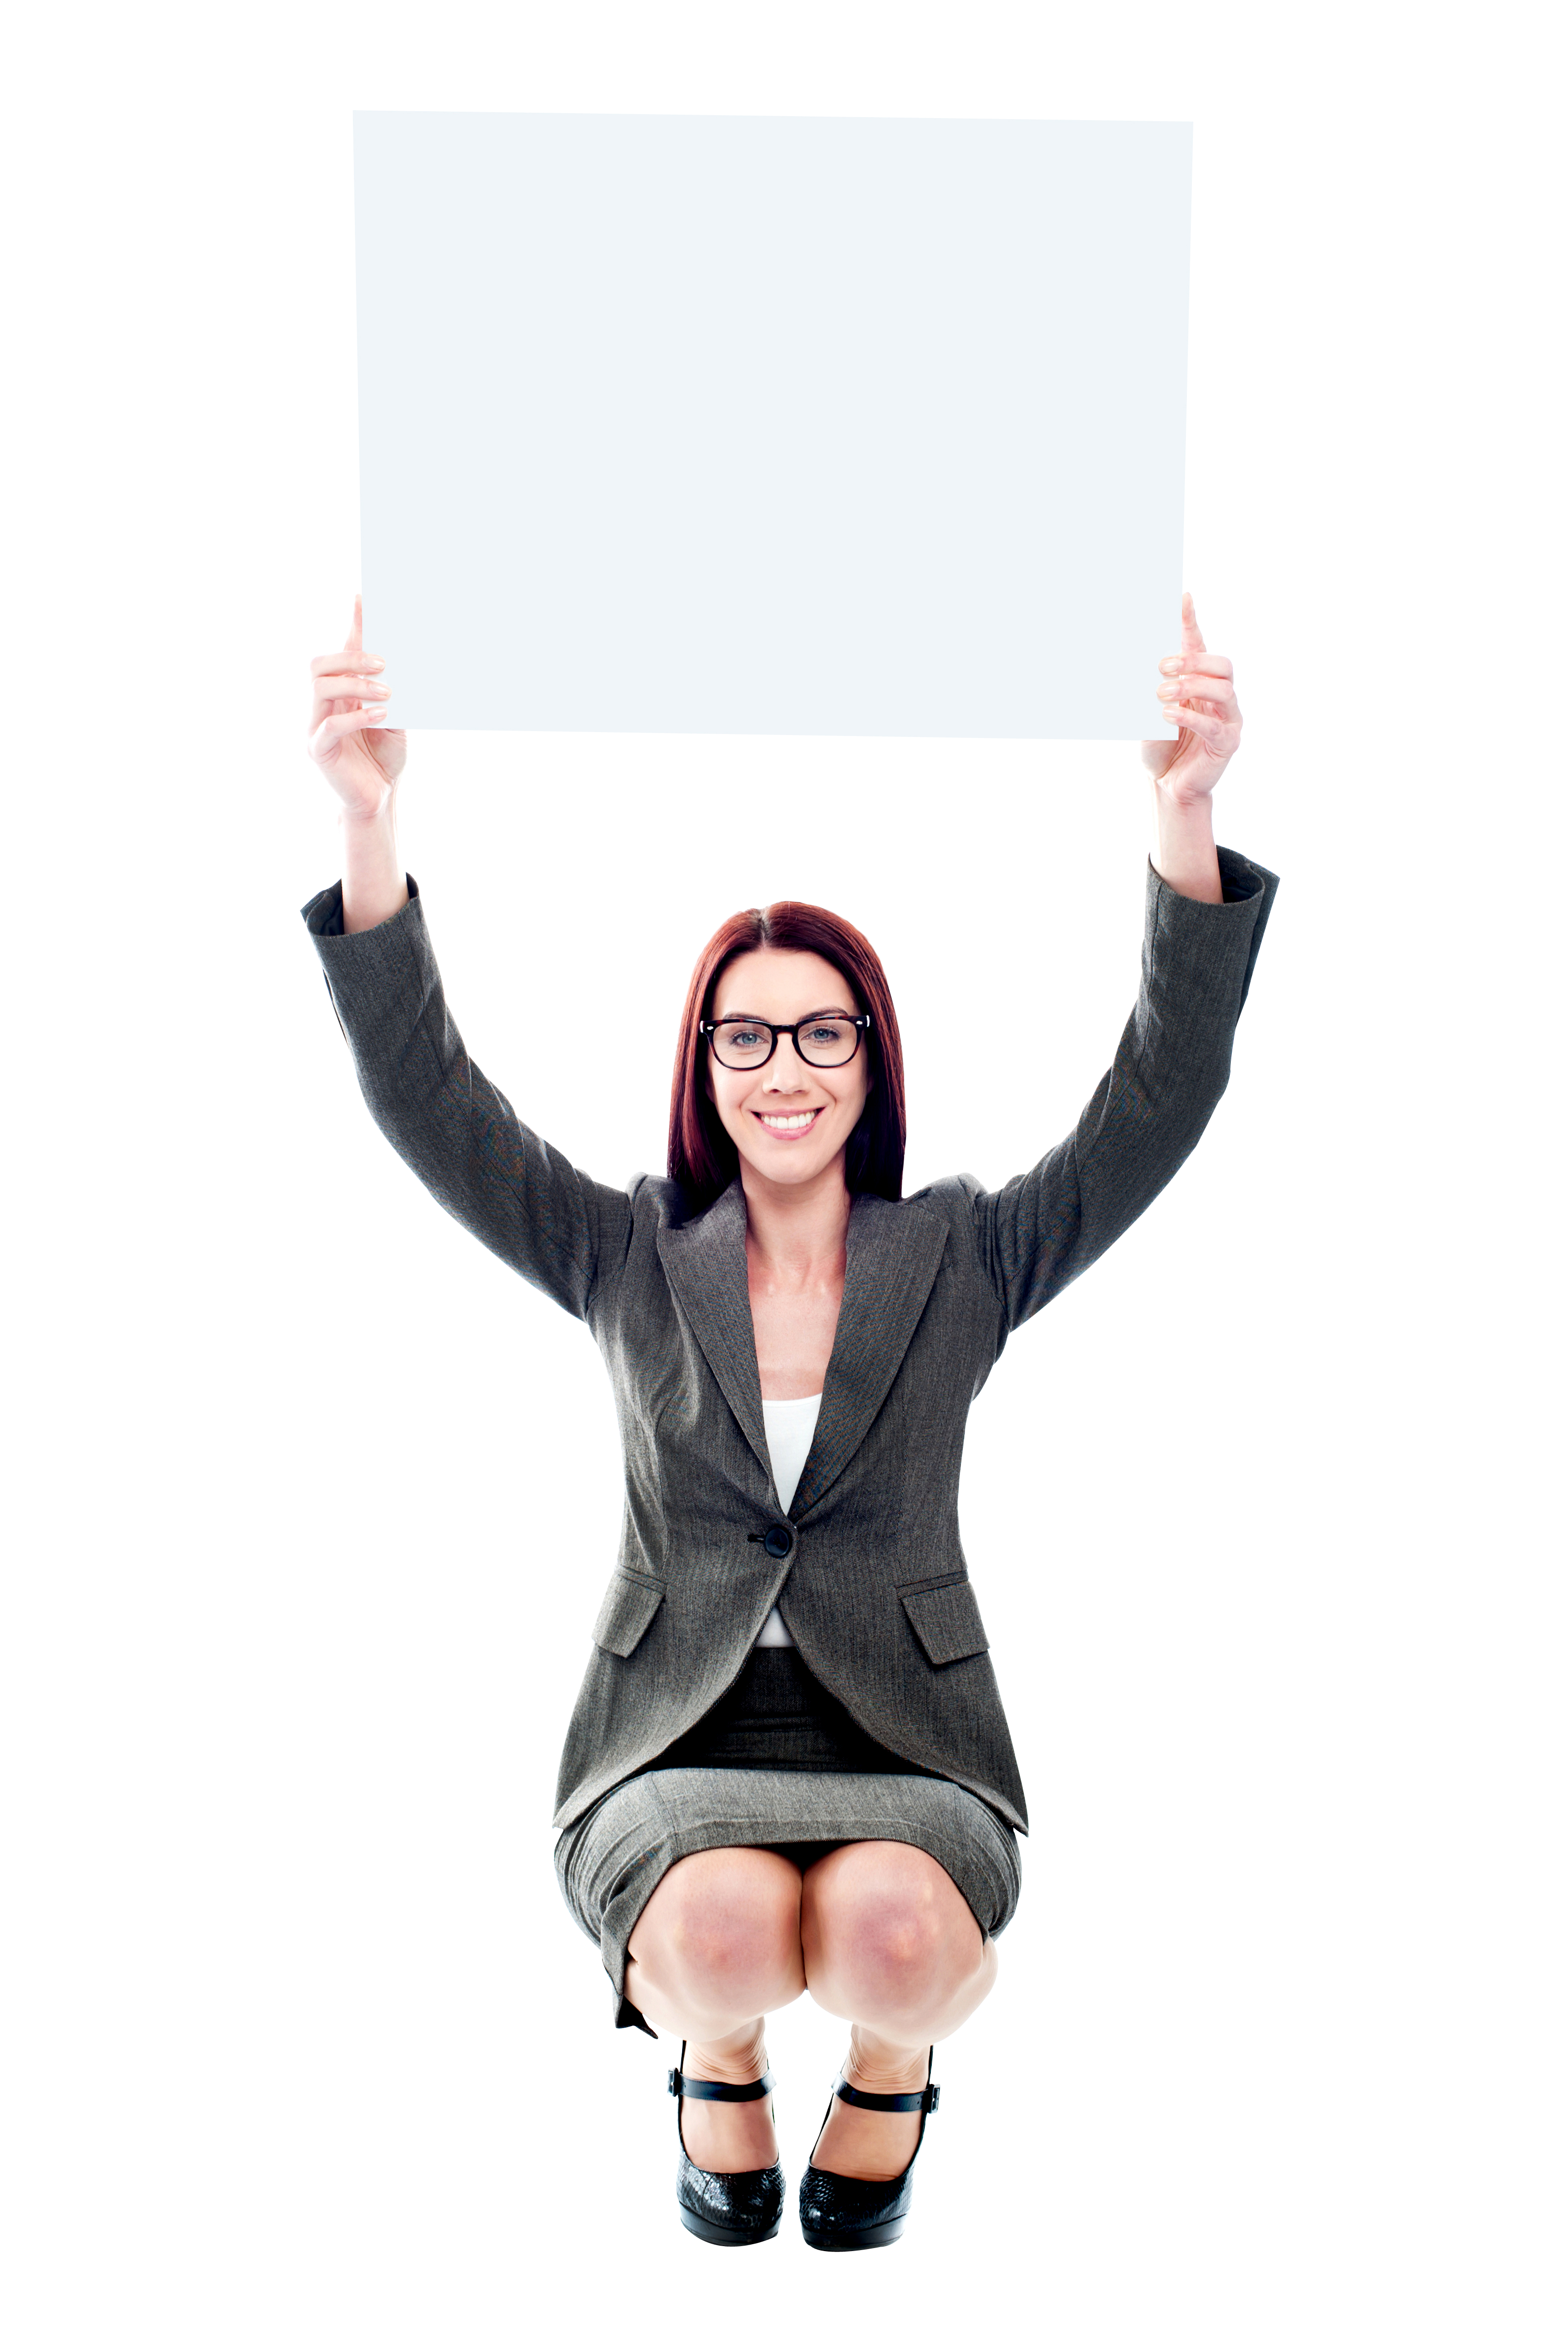 Girl Holding Banner Free Commercial Use PNG Image - Free PNG HD Images For Commercial Use